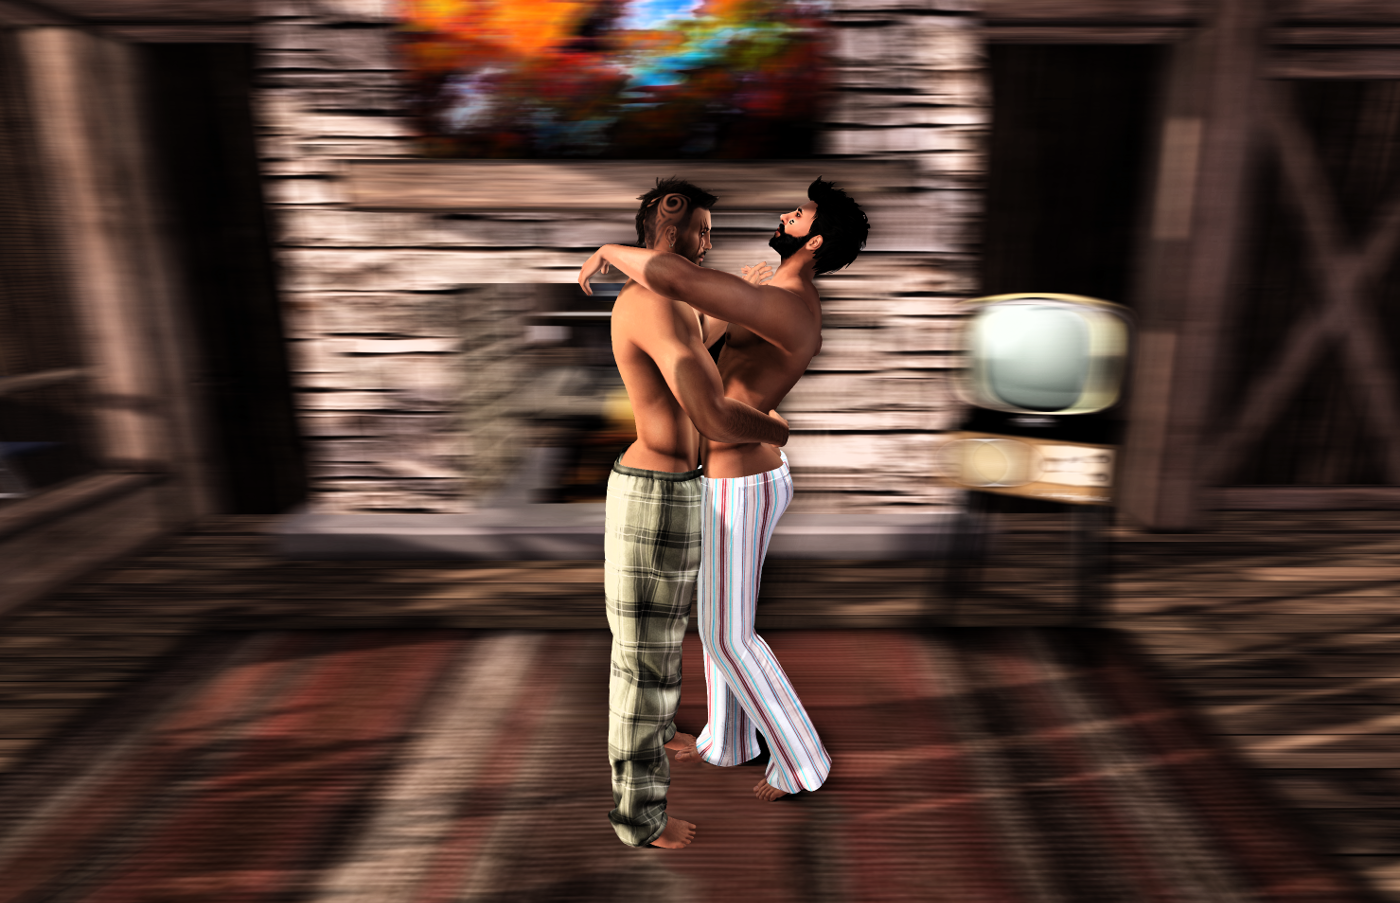 Randy and Ricco dancing at home